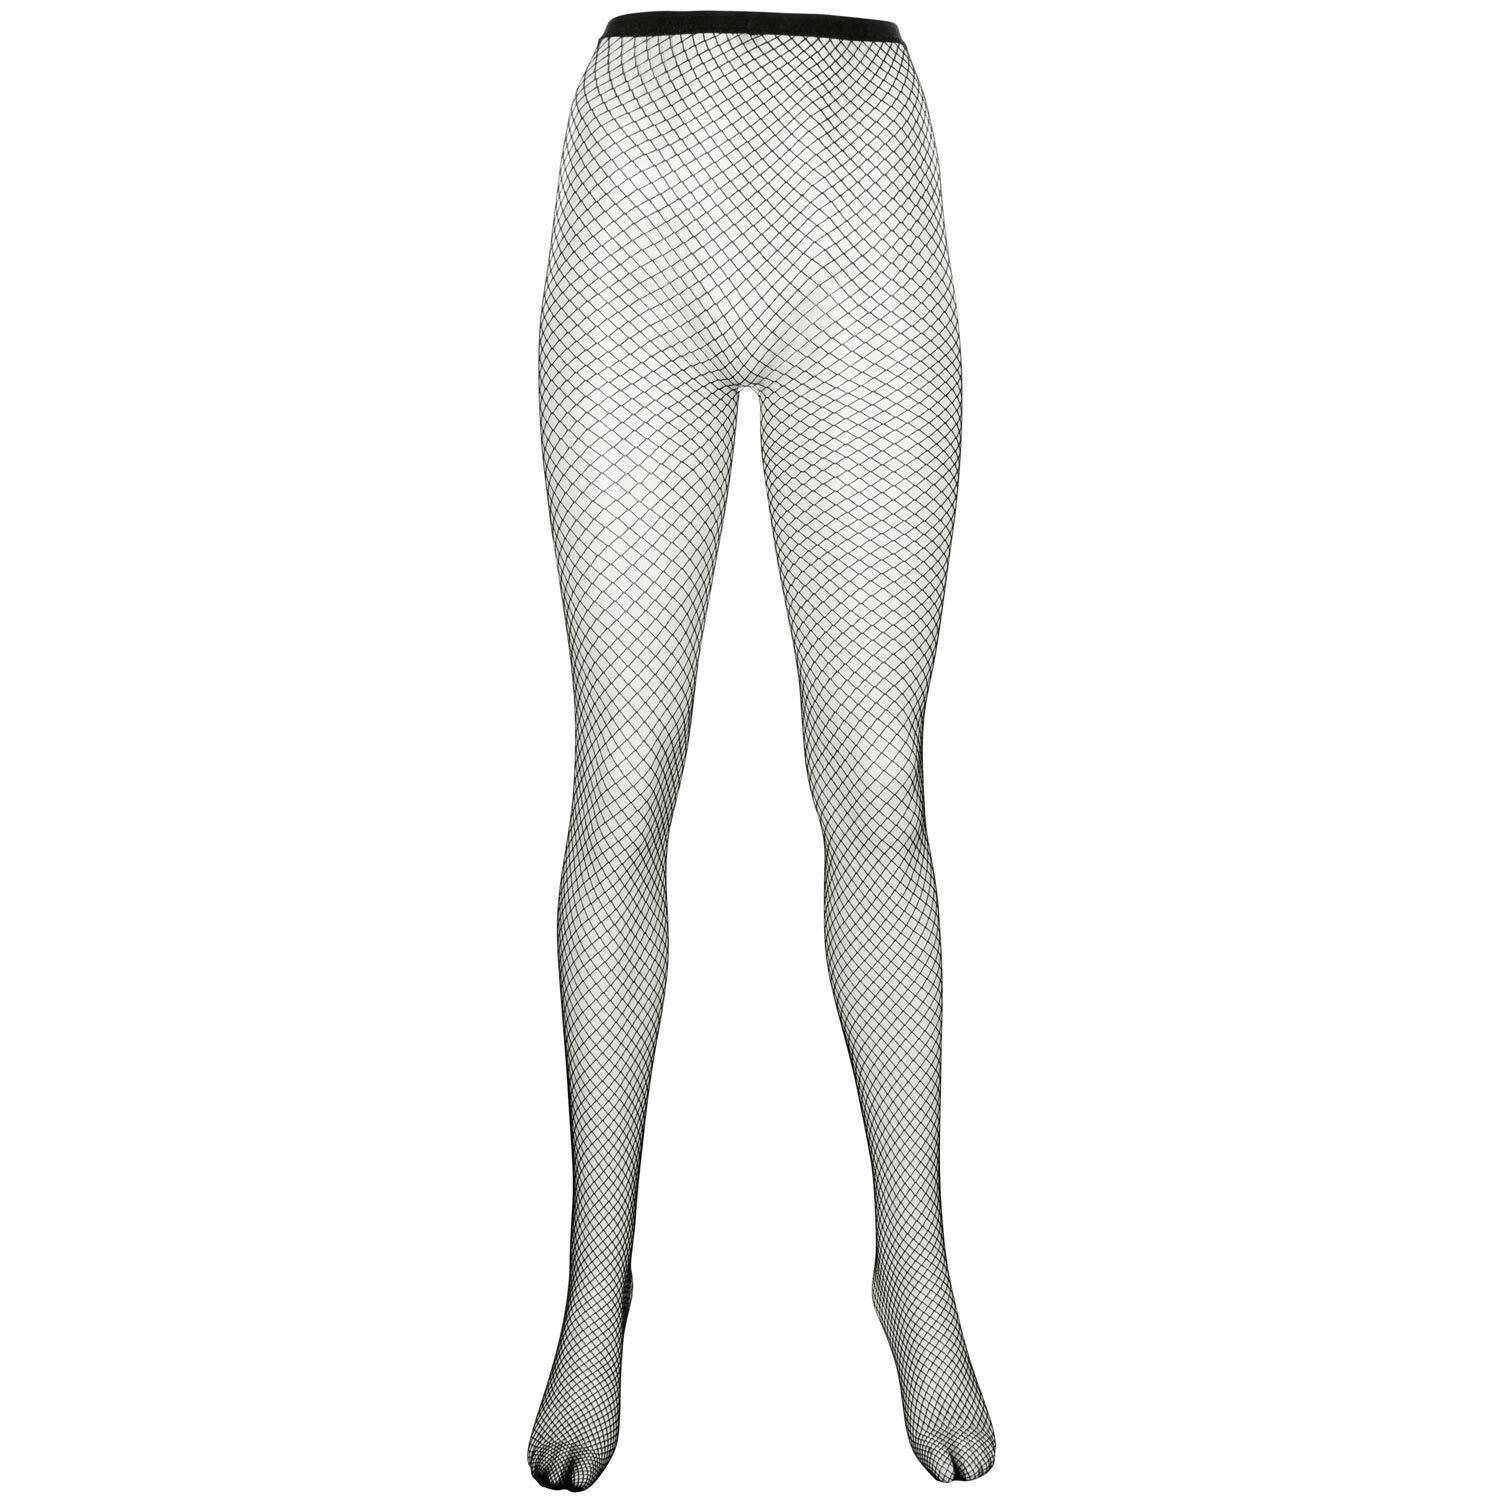 SUBTLE FISHNET TIGHTS